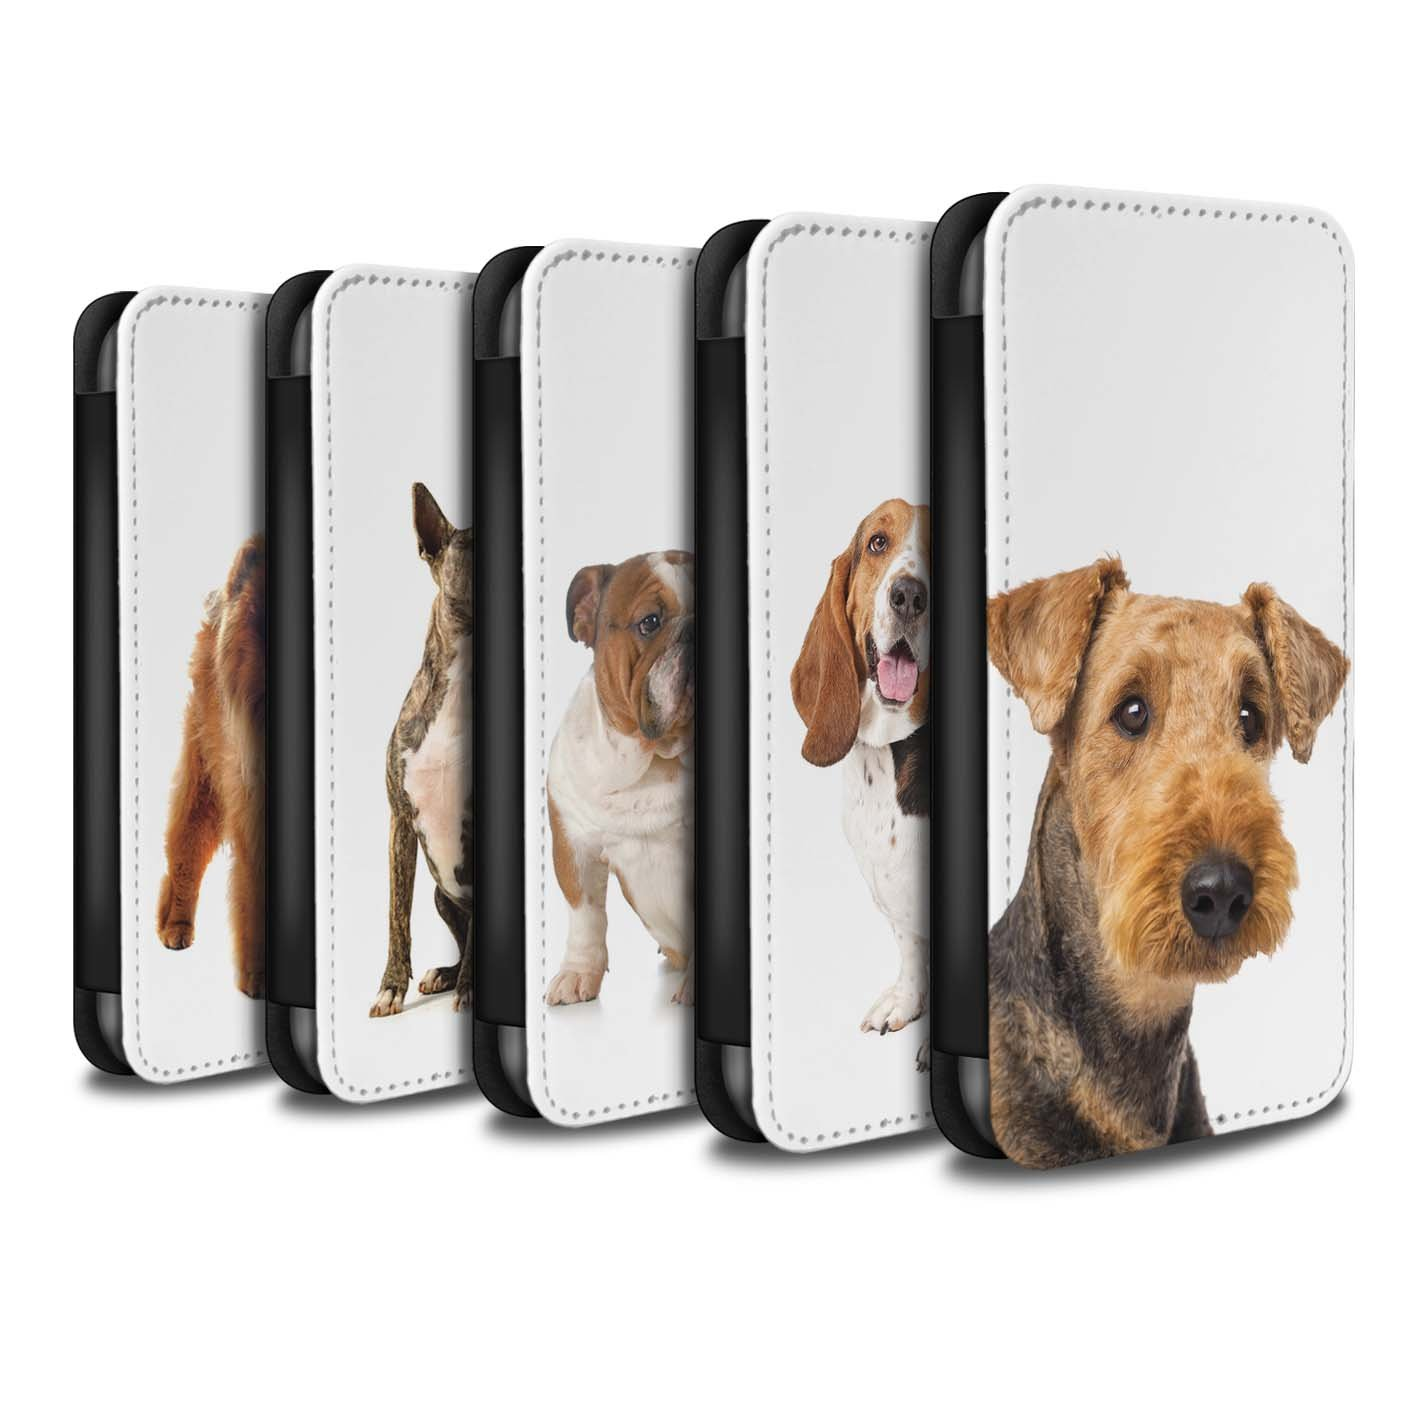 STUFF4 PU Leather Wallet Flip Case/Cover for Apple iPhone X/10 / Pack 12pcs Design / Dog Breeds Collection